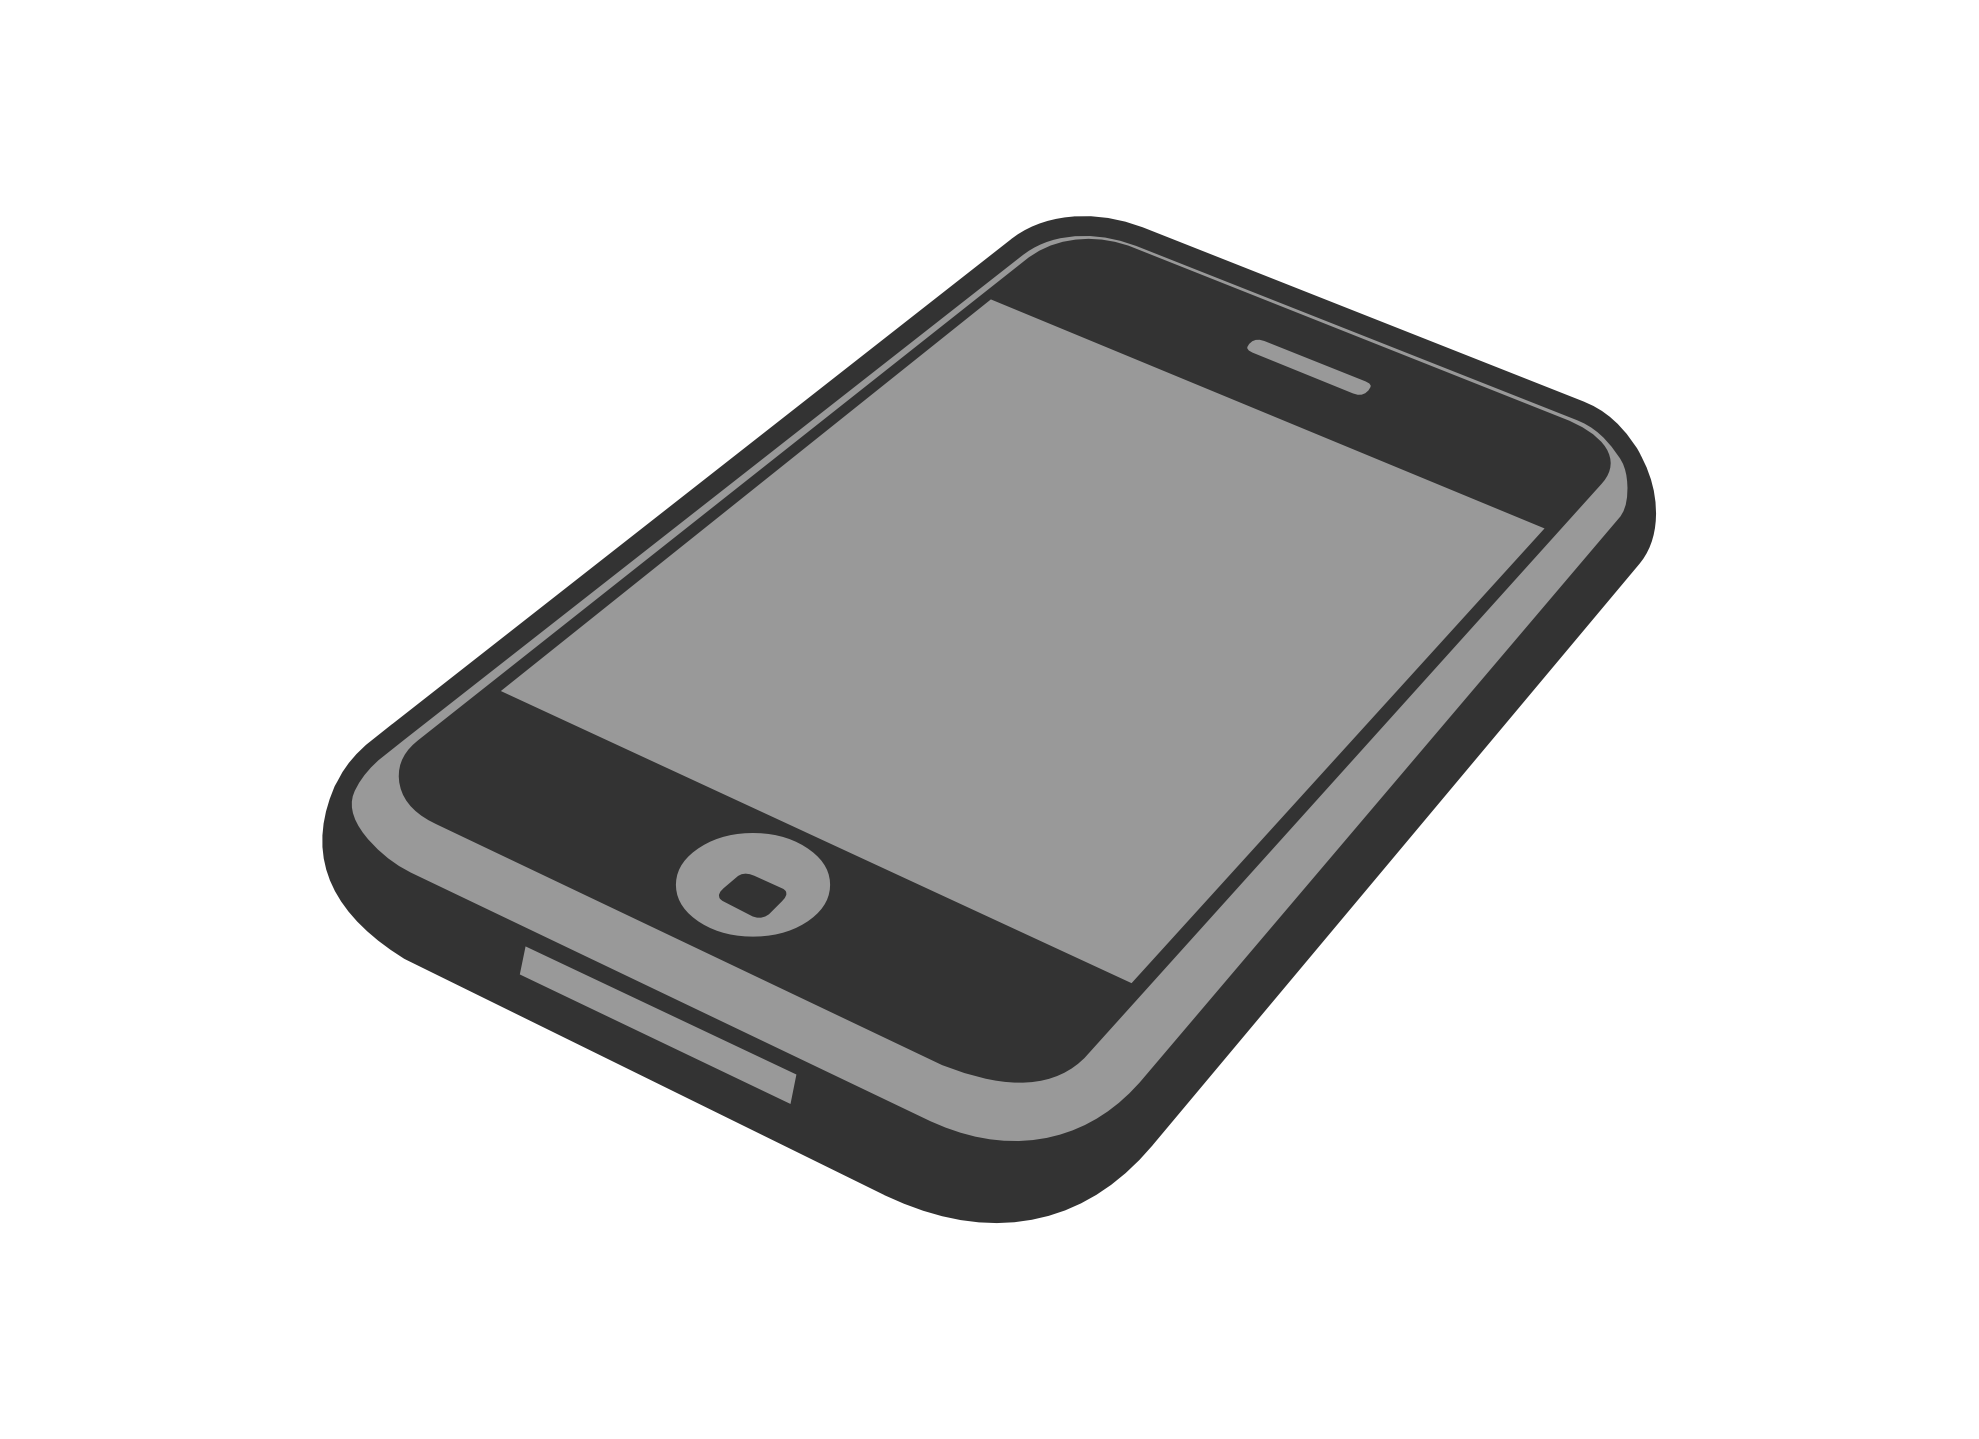 Blackberry clipart cell phone Collection clipart icon phone Cell